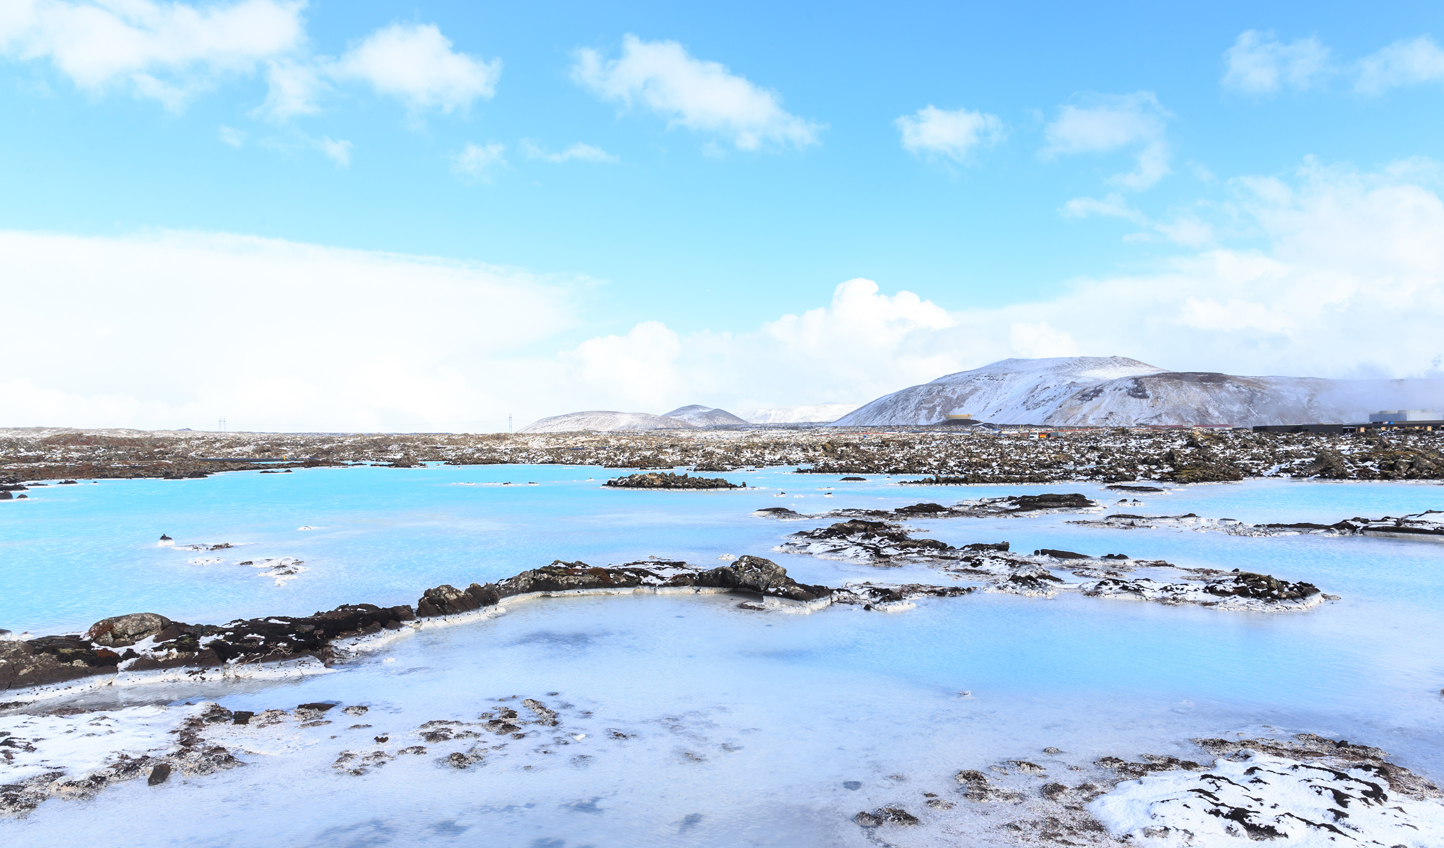 Take a dip in the thermal waters of the Blue Lagoon to begin